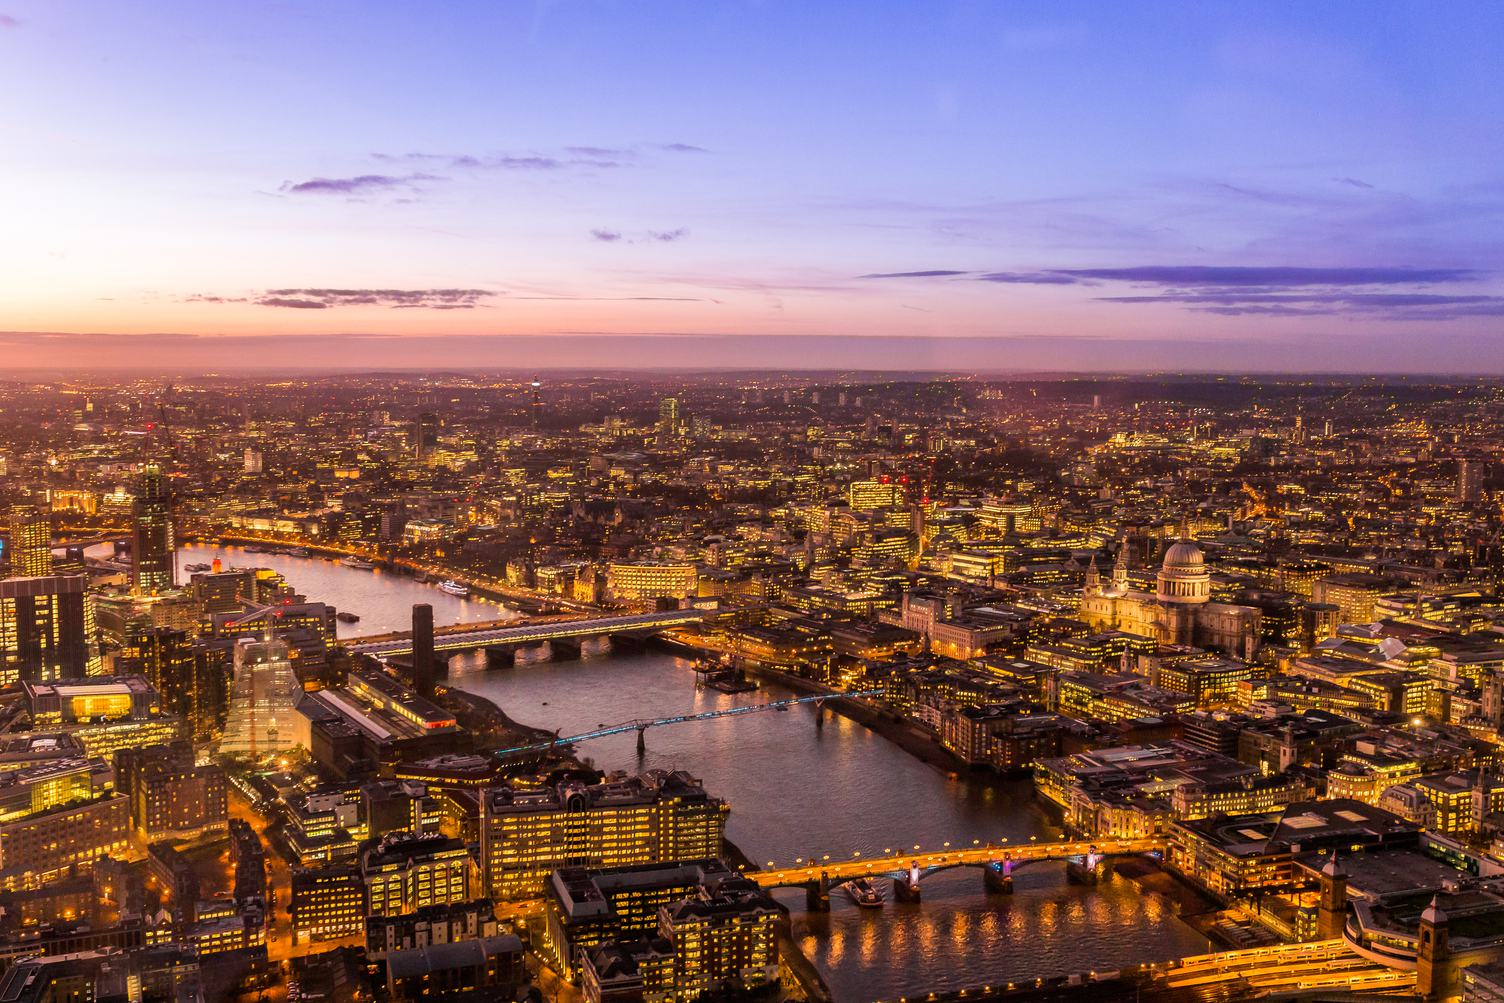 London by Night Aerial View